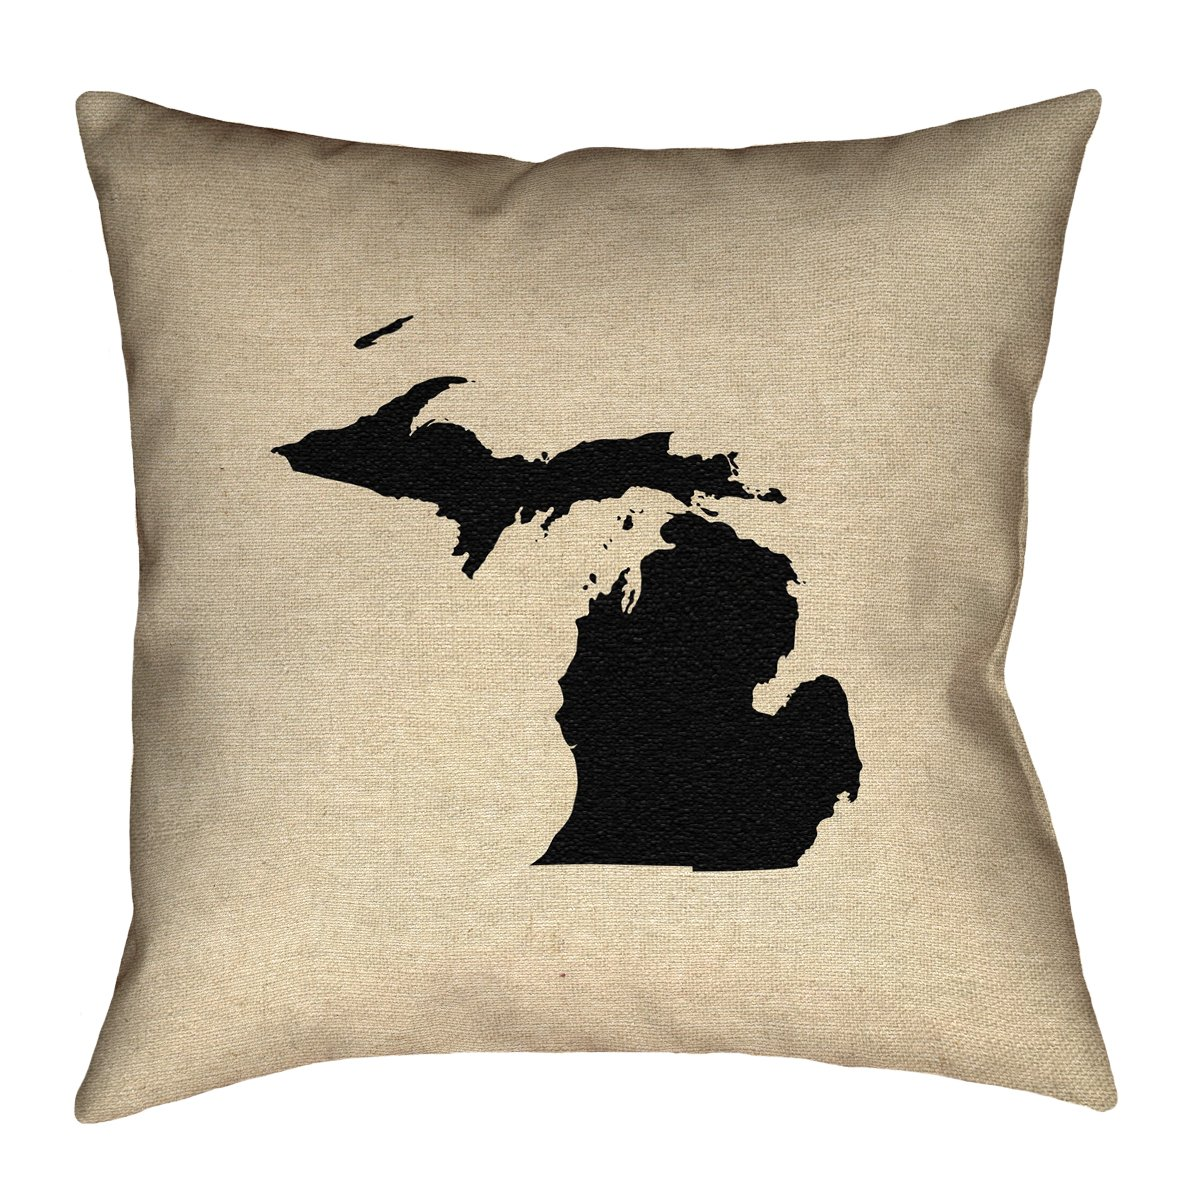 ArtVerse Katelyn Smith 16 x 16 Faux Suede Double Sided Print with Concealed Zipper /& Insert Michigan Pillow